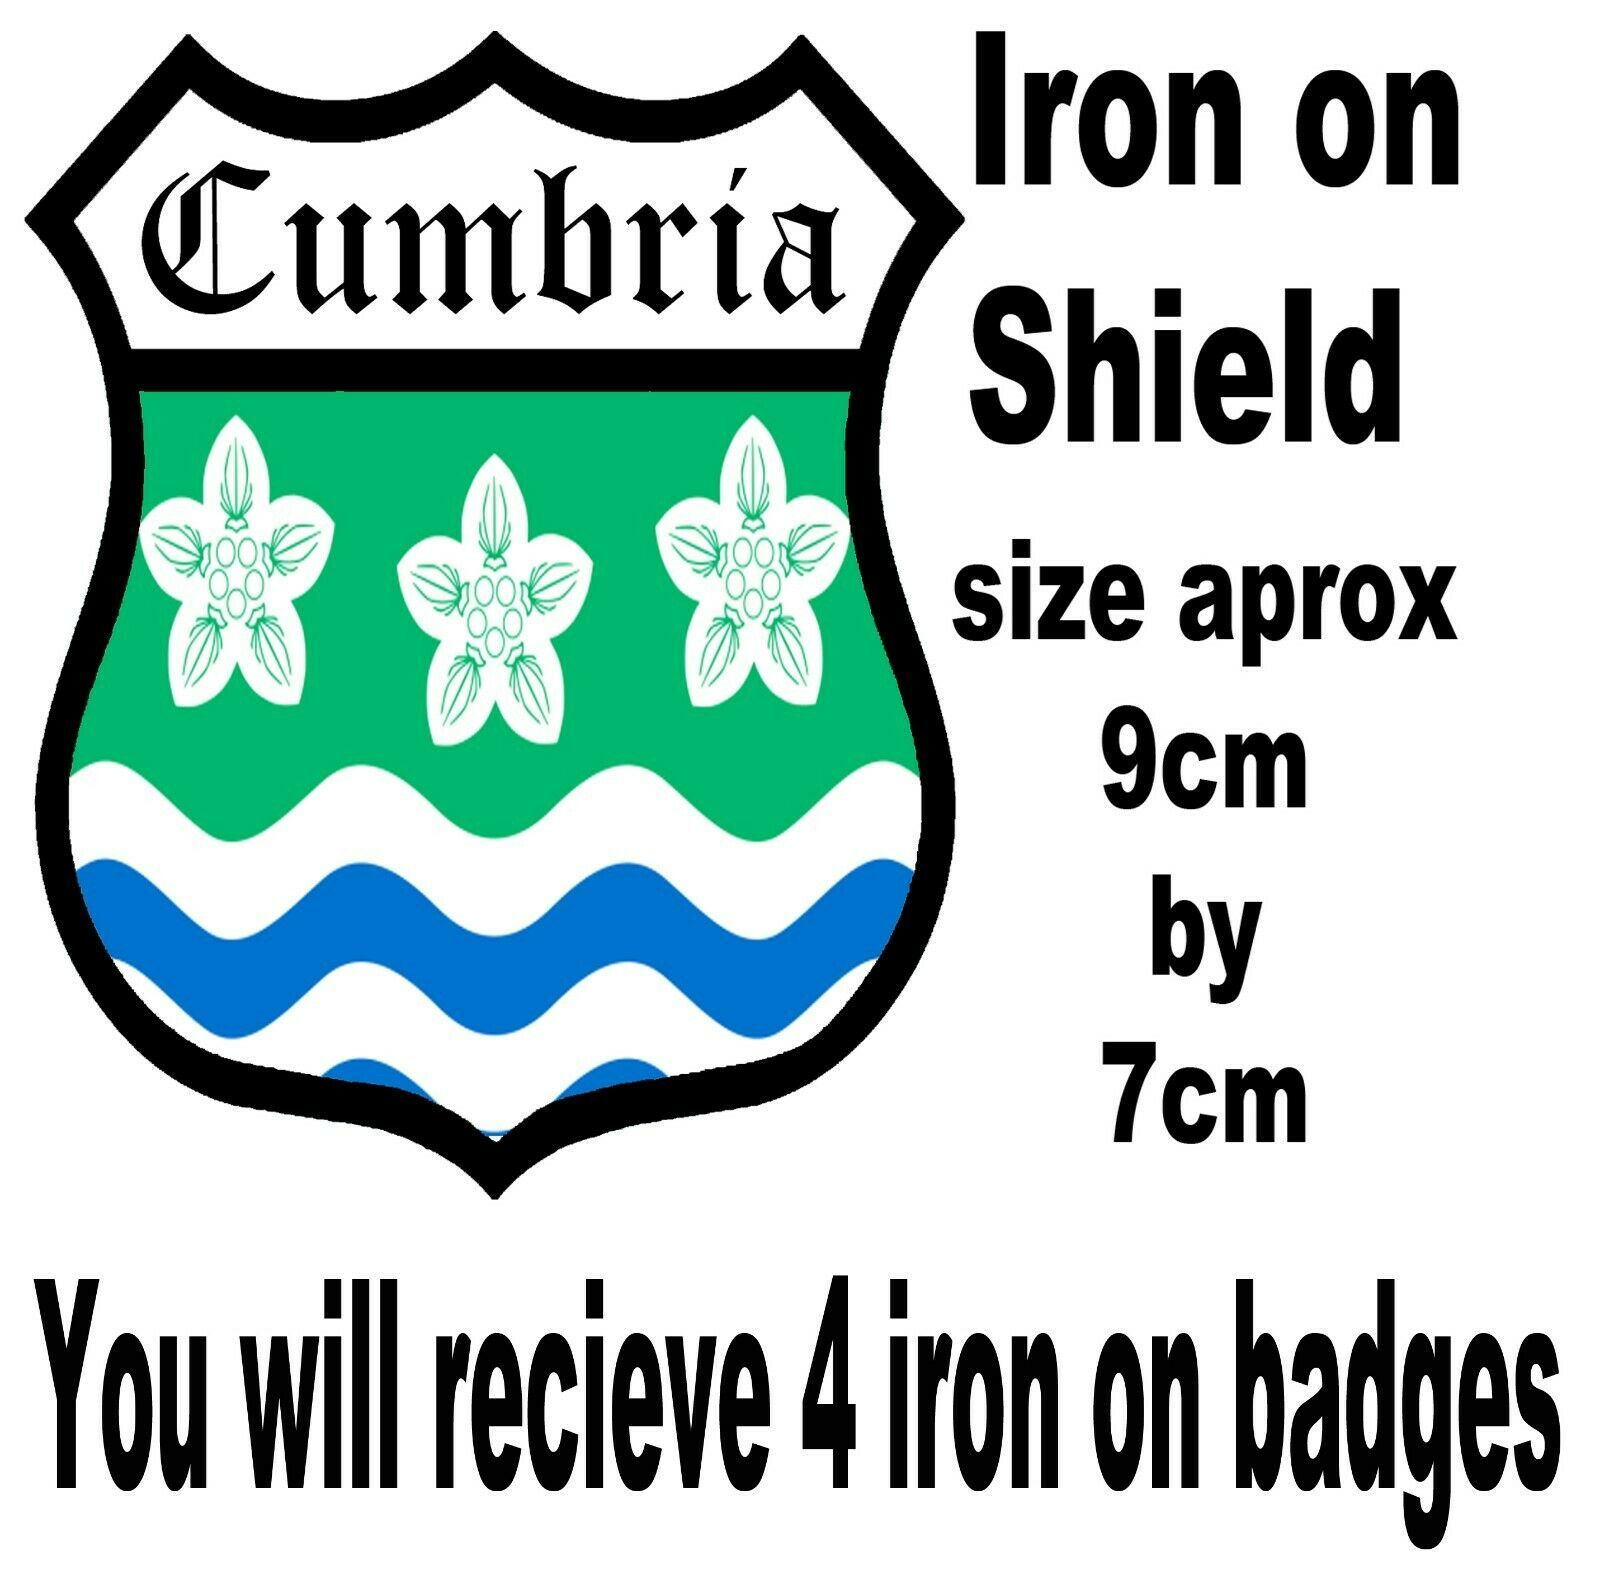 Cumbria t shirt iron on badge or stickers